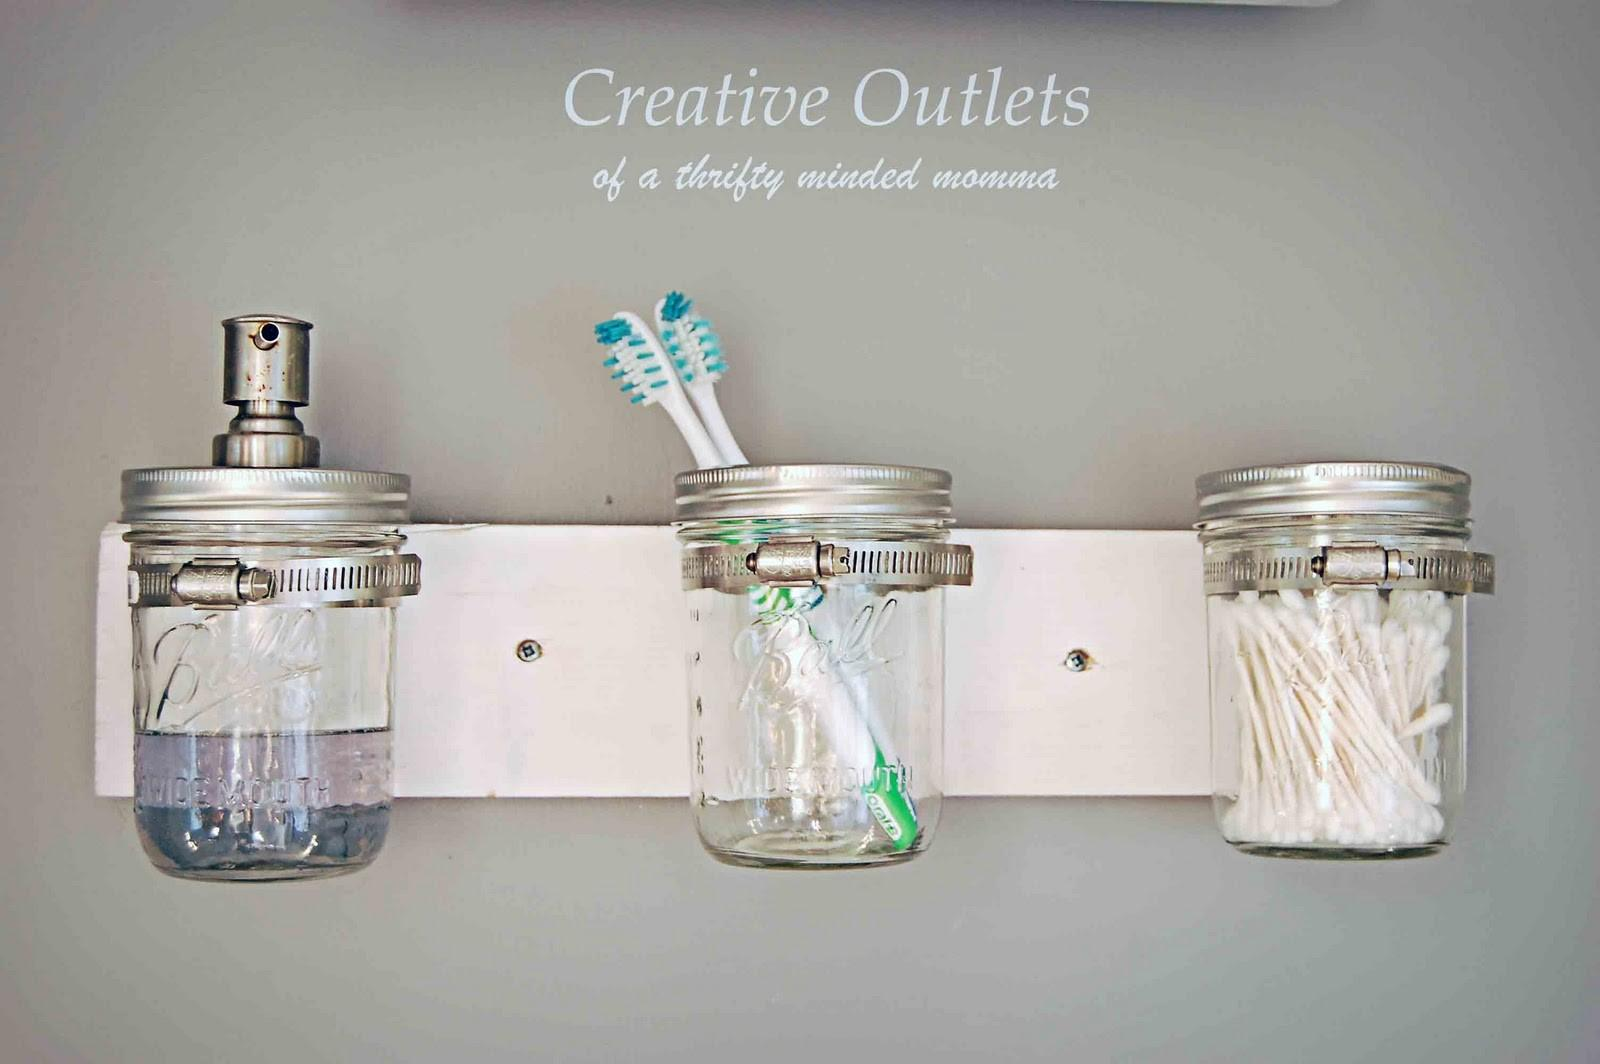 Creative Outlets Thrifty Minded Momma Mason Jar